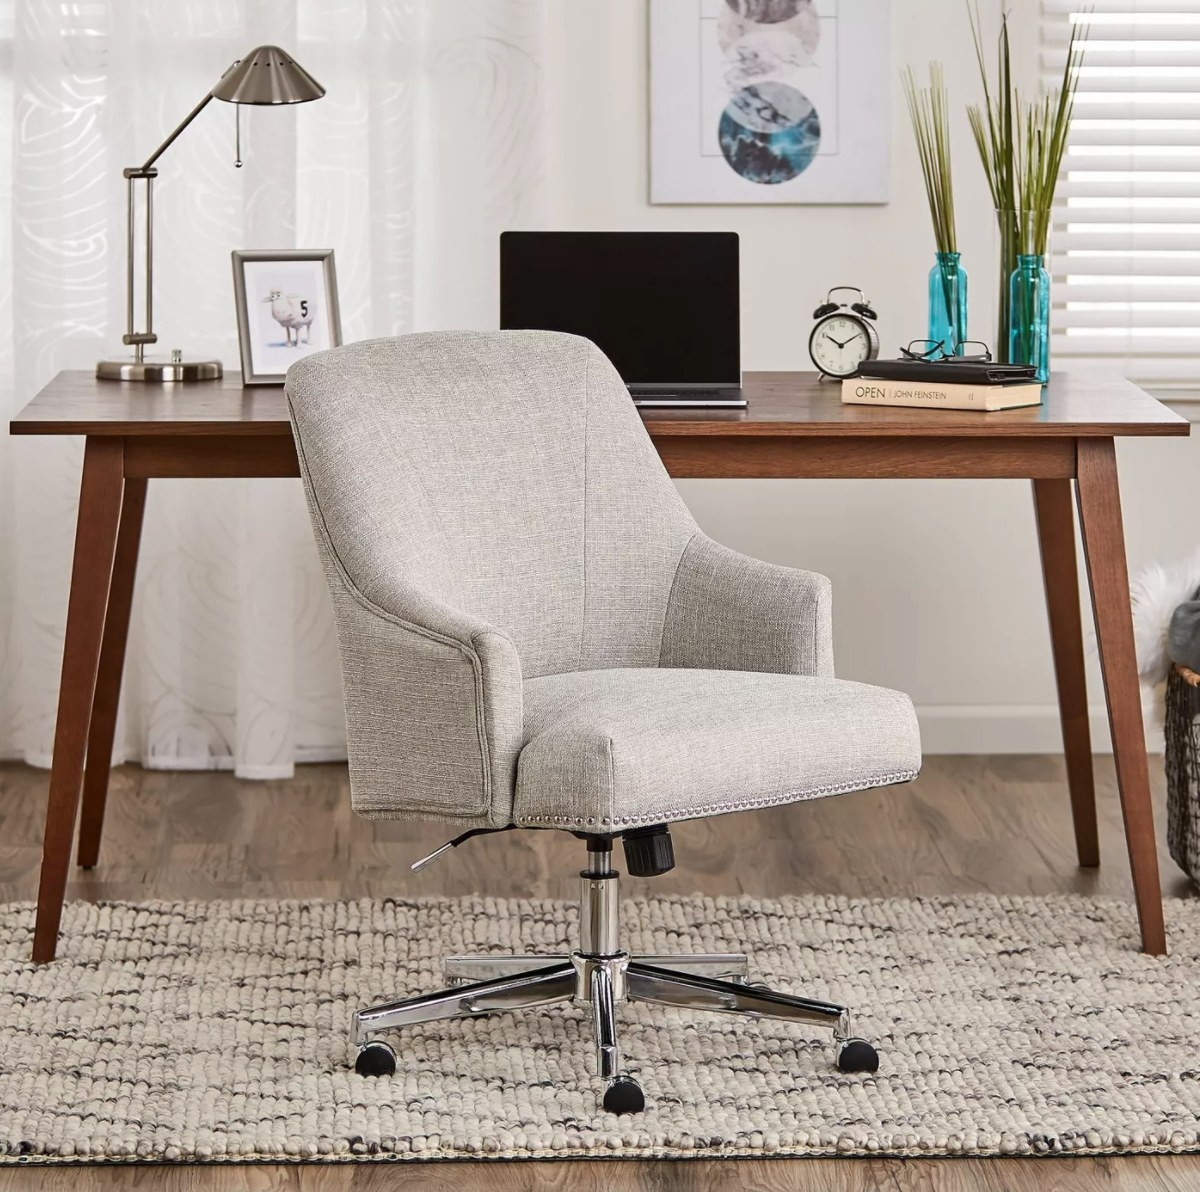 The home office chair in gray with metal legs and rolling wheels